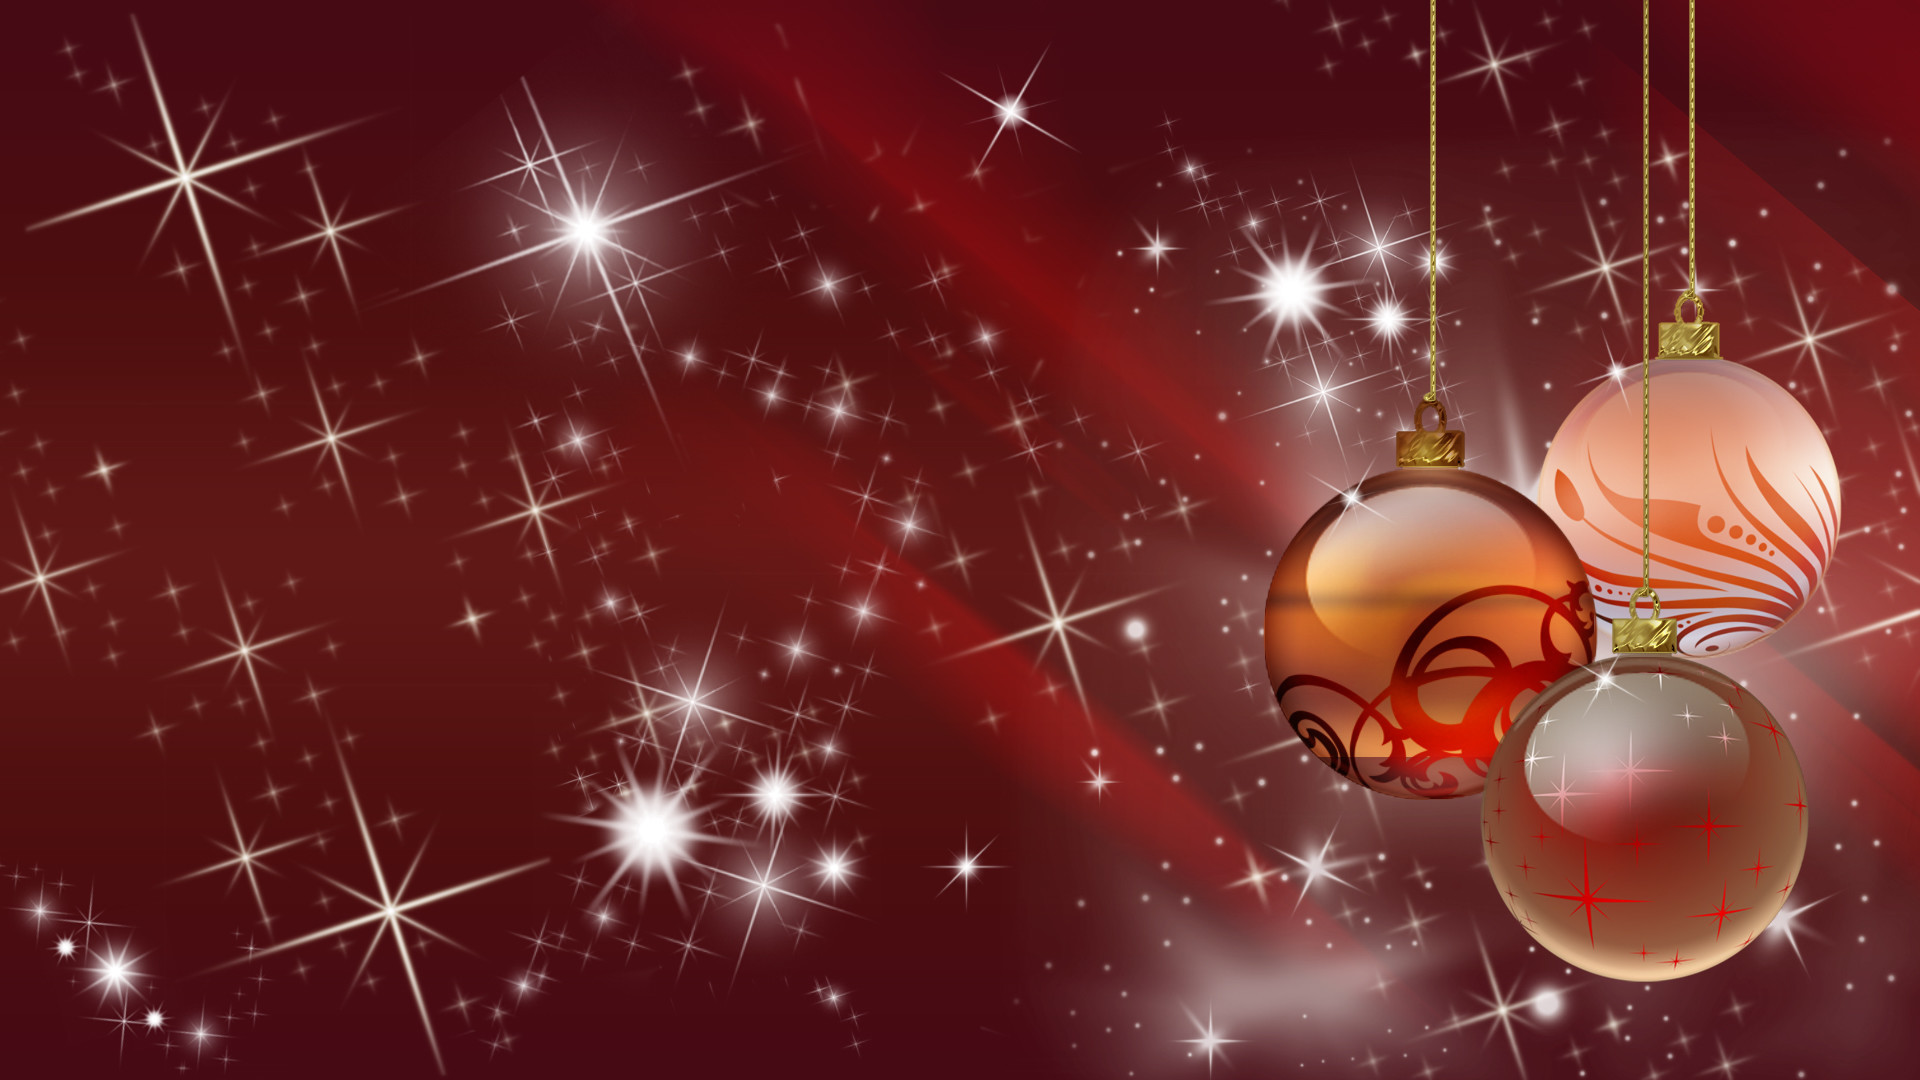 1920x1080  Free Christmas Wallpaper, wallpaper, Free Christmas Wallpaper hd .